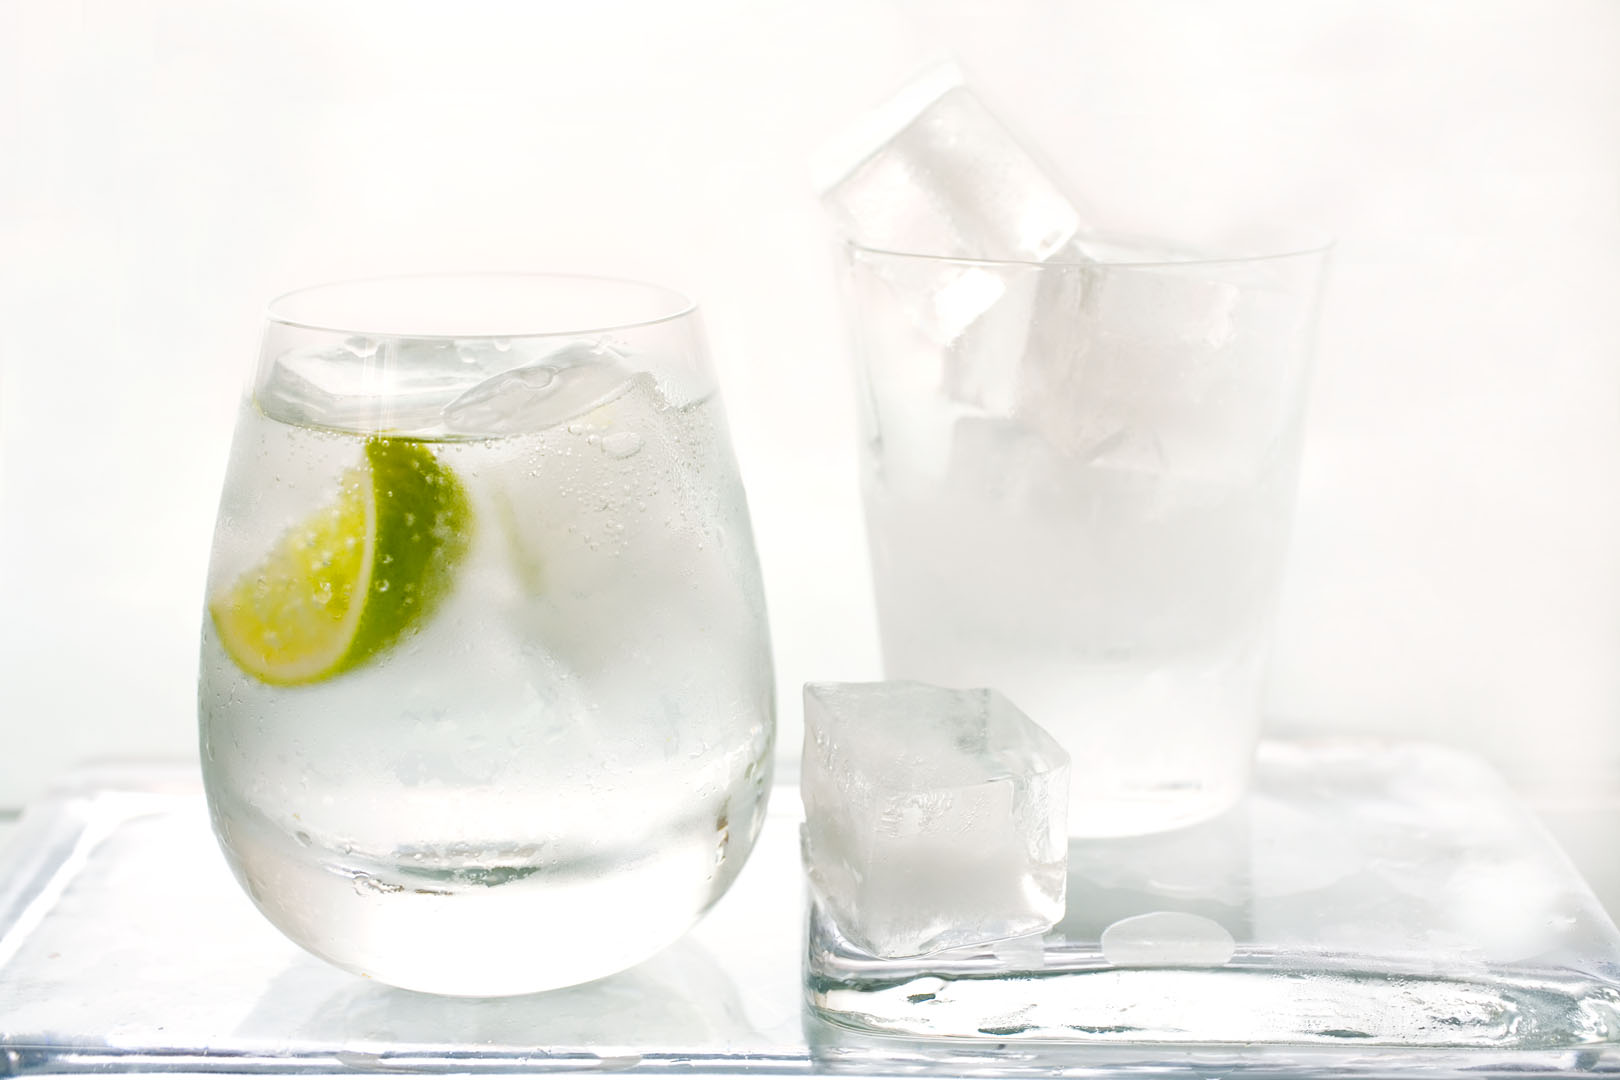 Remington_GinTonic_00038.jpg